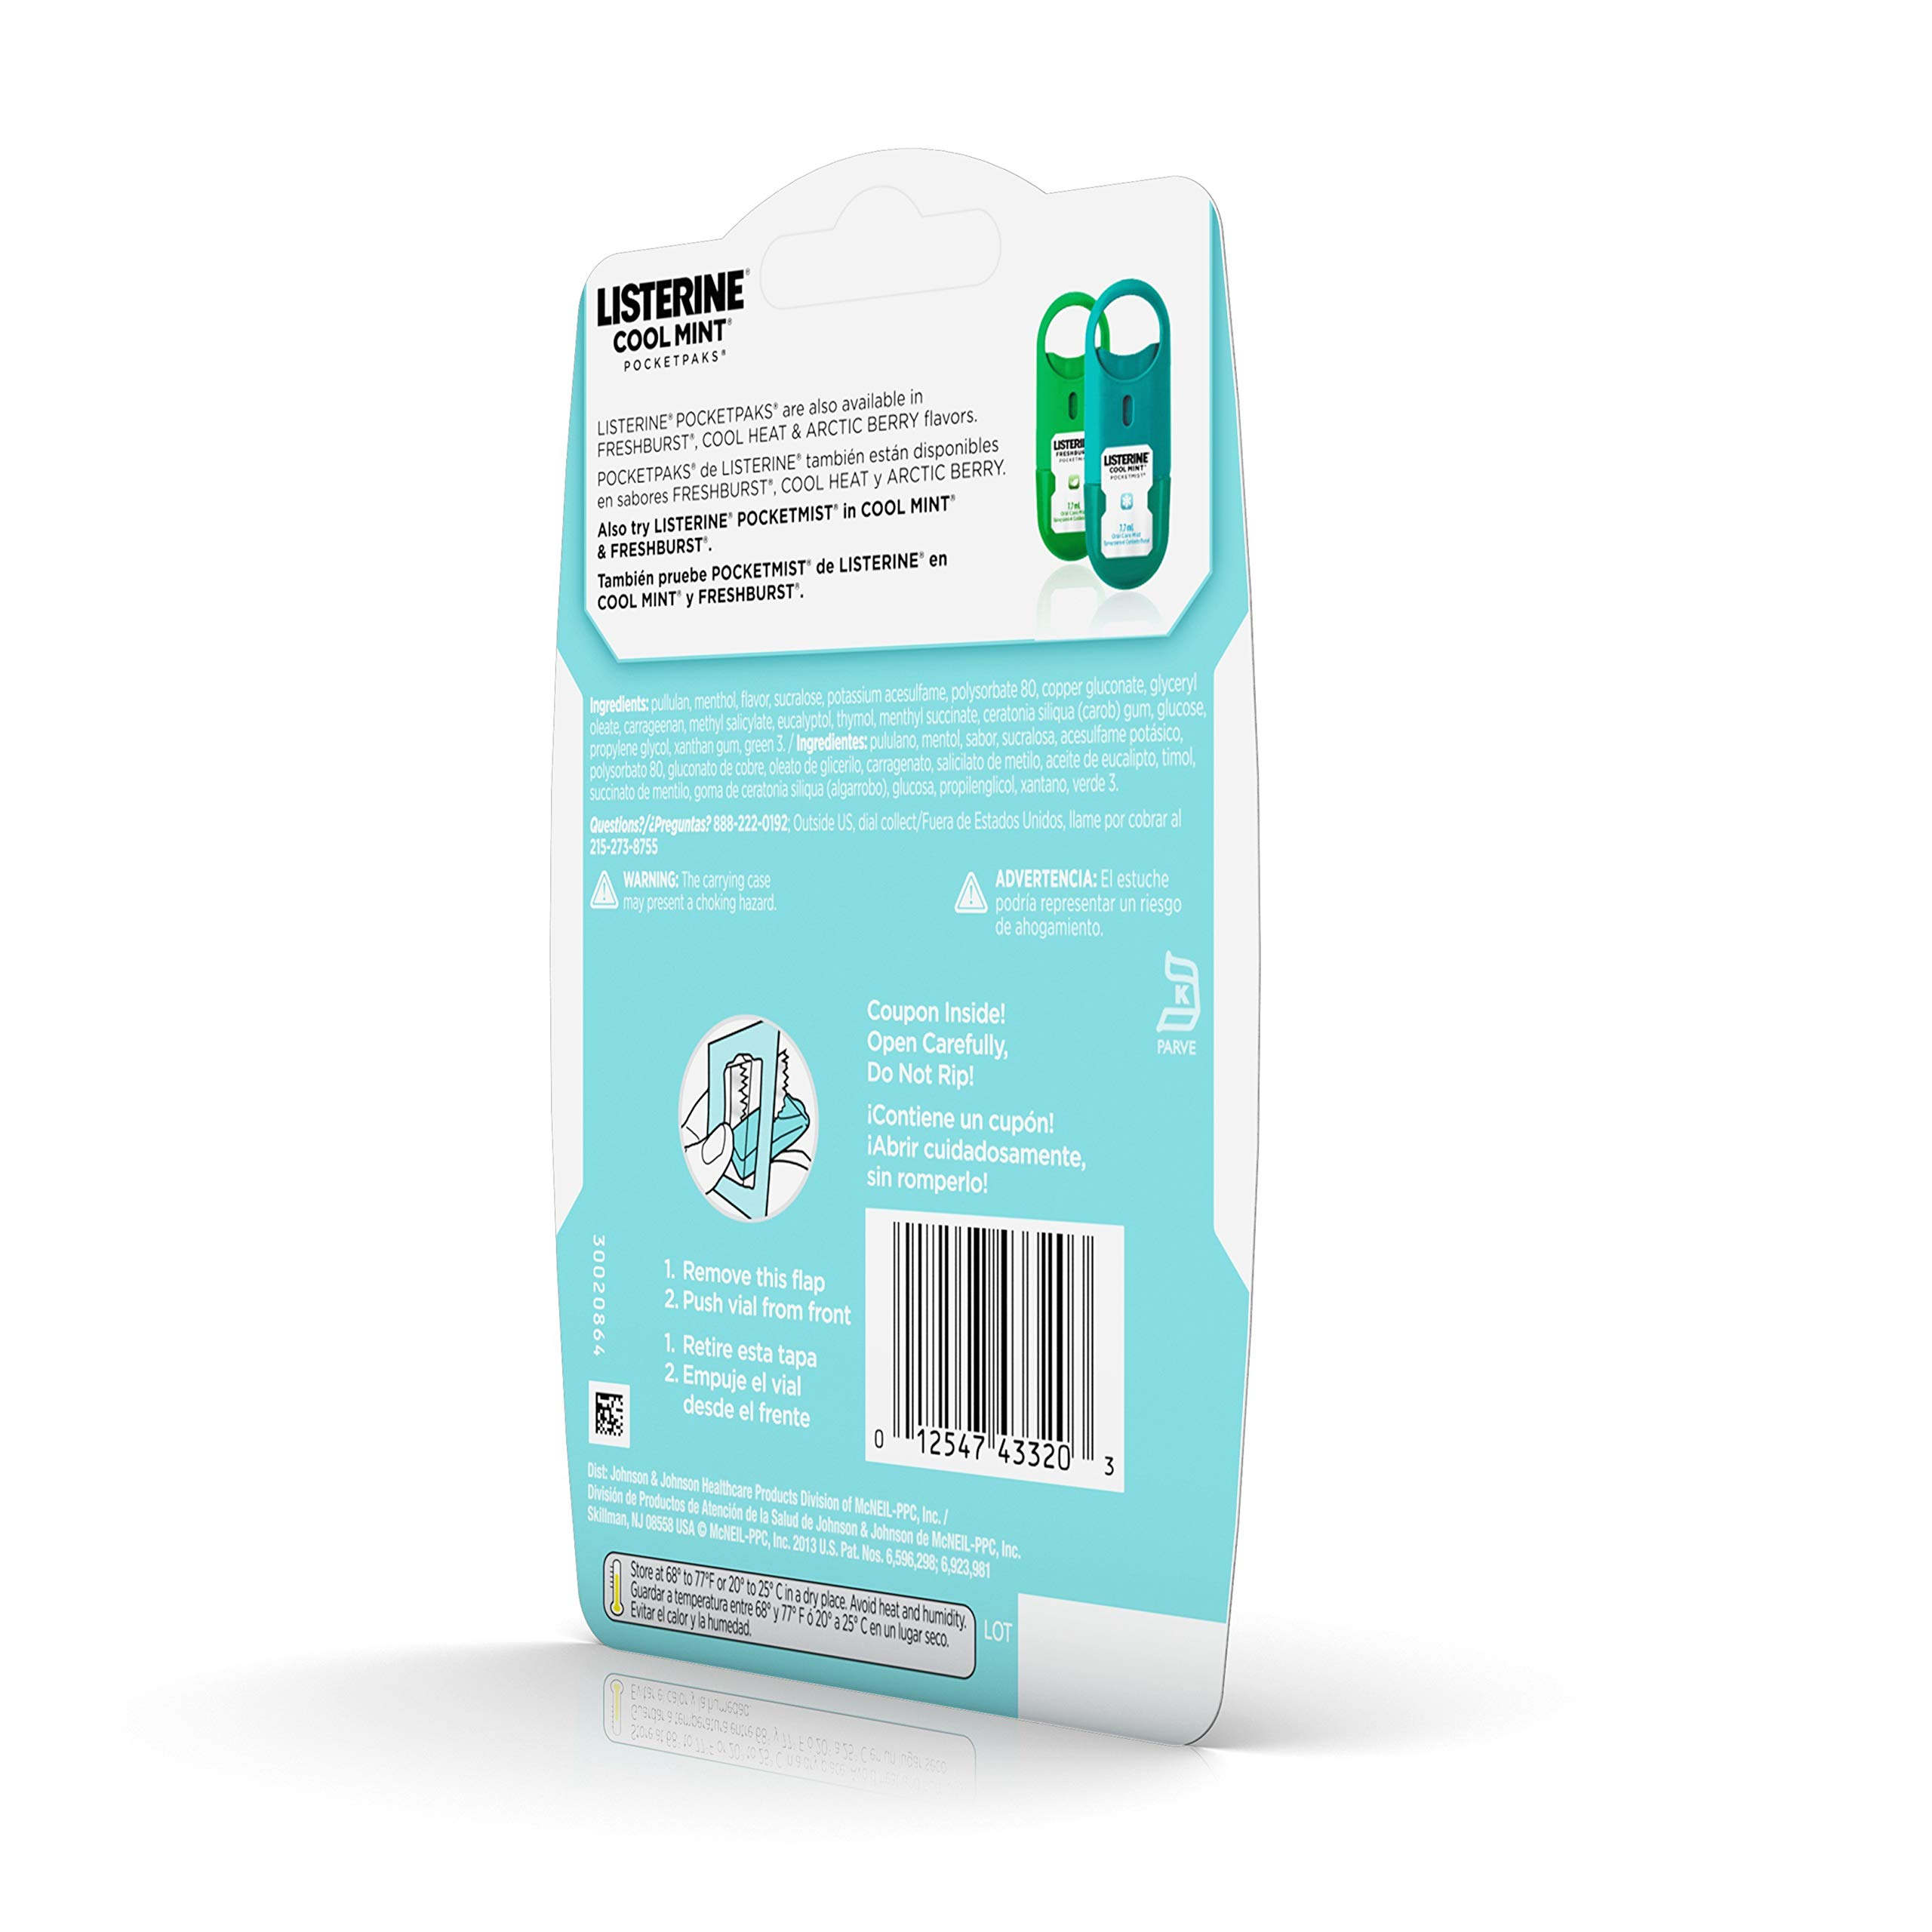 Listerine Cool Mint Pocketpaks Breath Strips Kills Bad Breath Germs, 24-Strip Pack, 3 Count (Pack Of 6) by Listerine (Image #5)